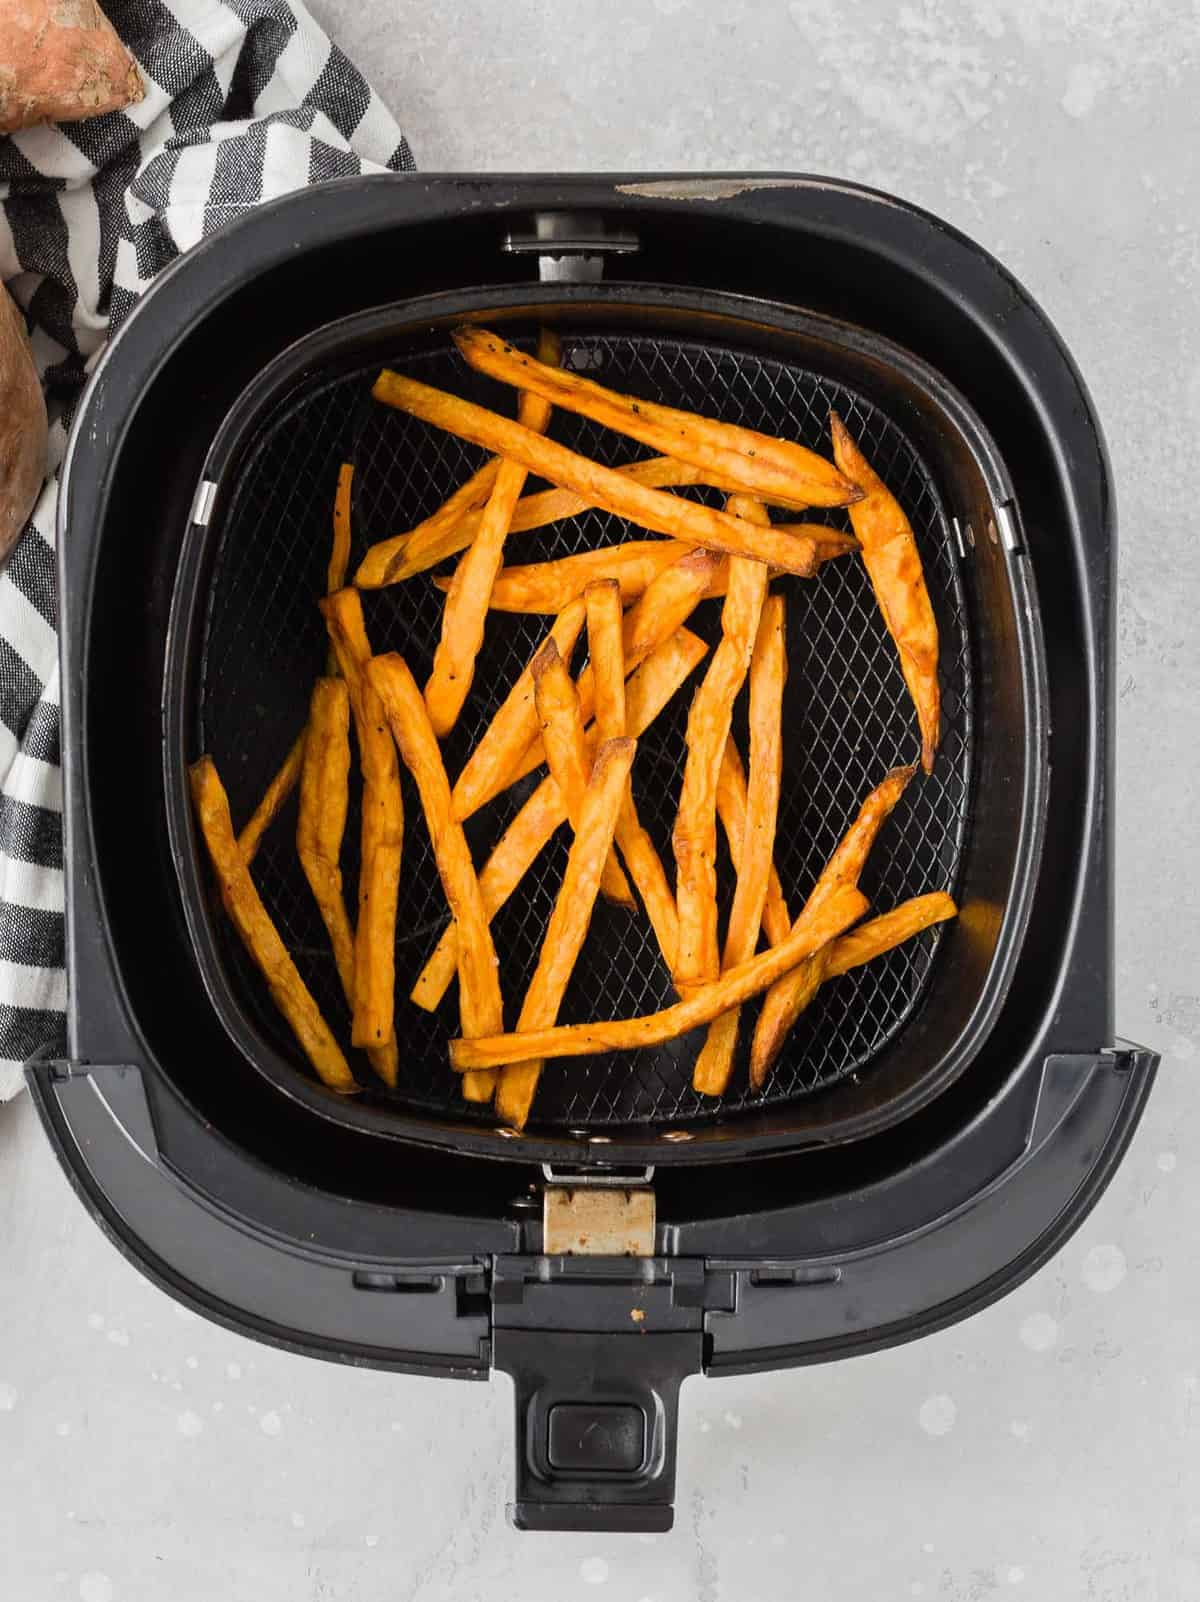 Overhead view of cooked sweet potato fries in an air fryer.